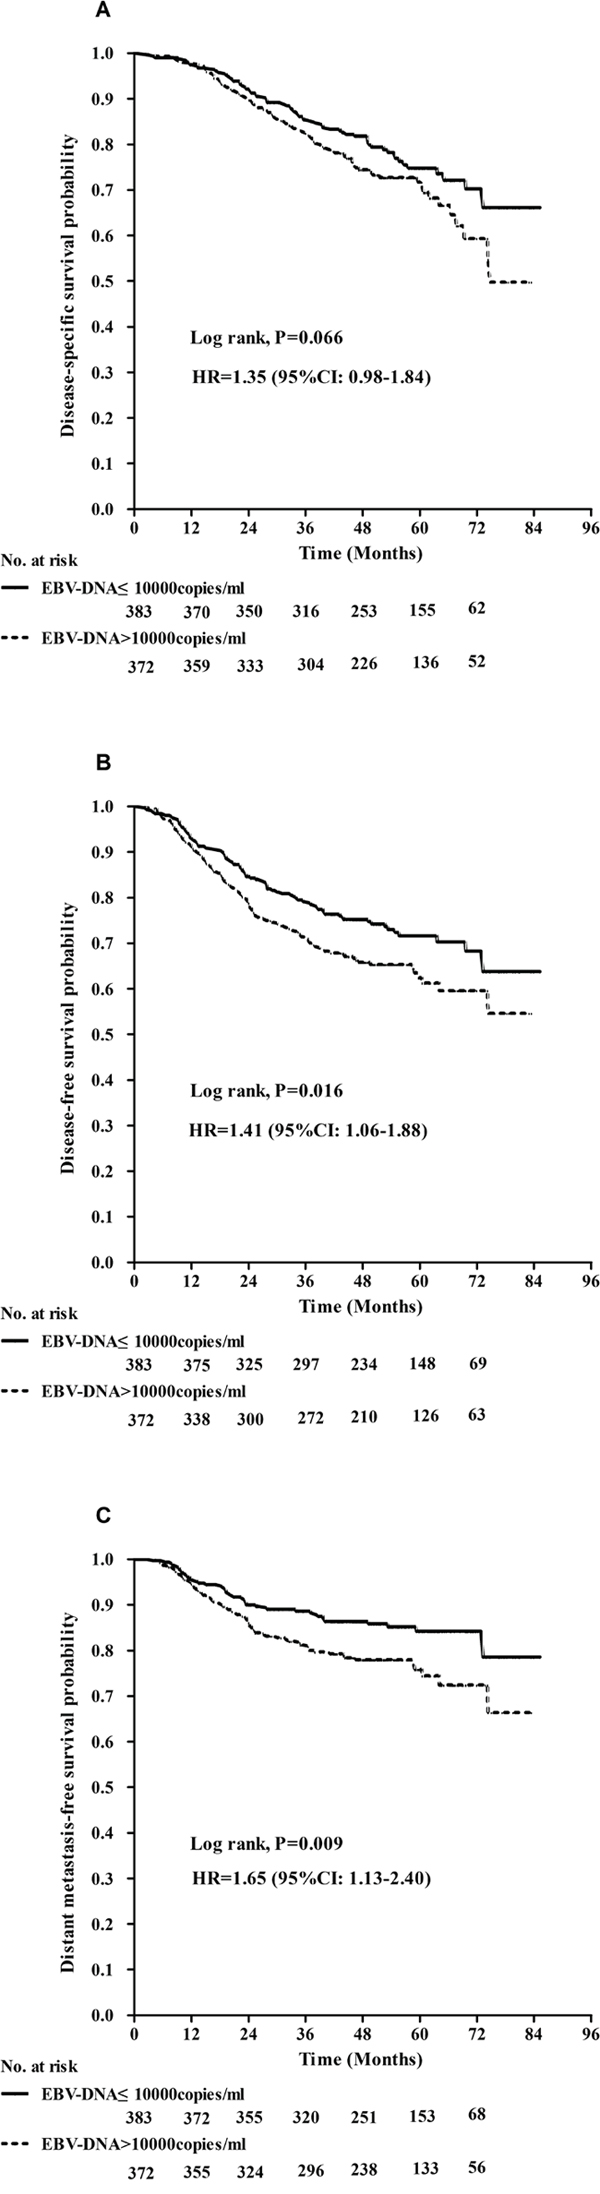 Kaplan–Meier curves show disease-specific survival A., disease-free survival B., and distant metastasis-free survival C. between patients with EBV-DNA ≤10000 copies/ml and EBV-DNA >10000 copies/ml.